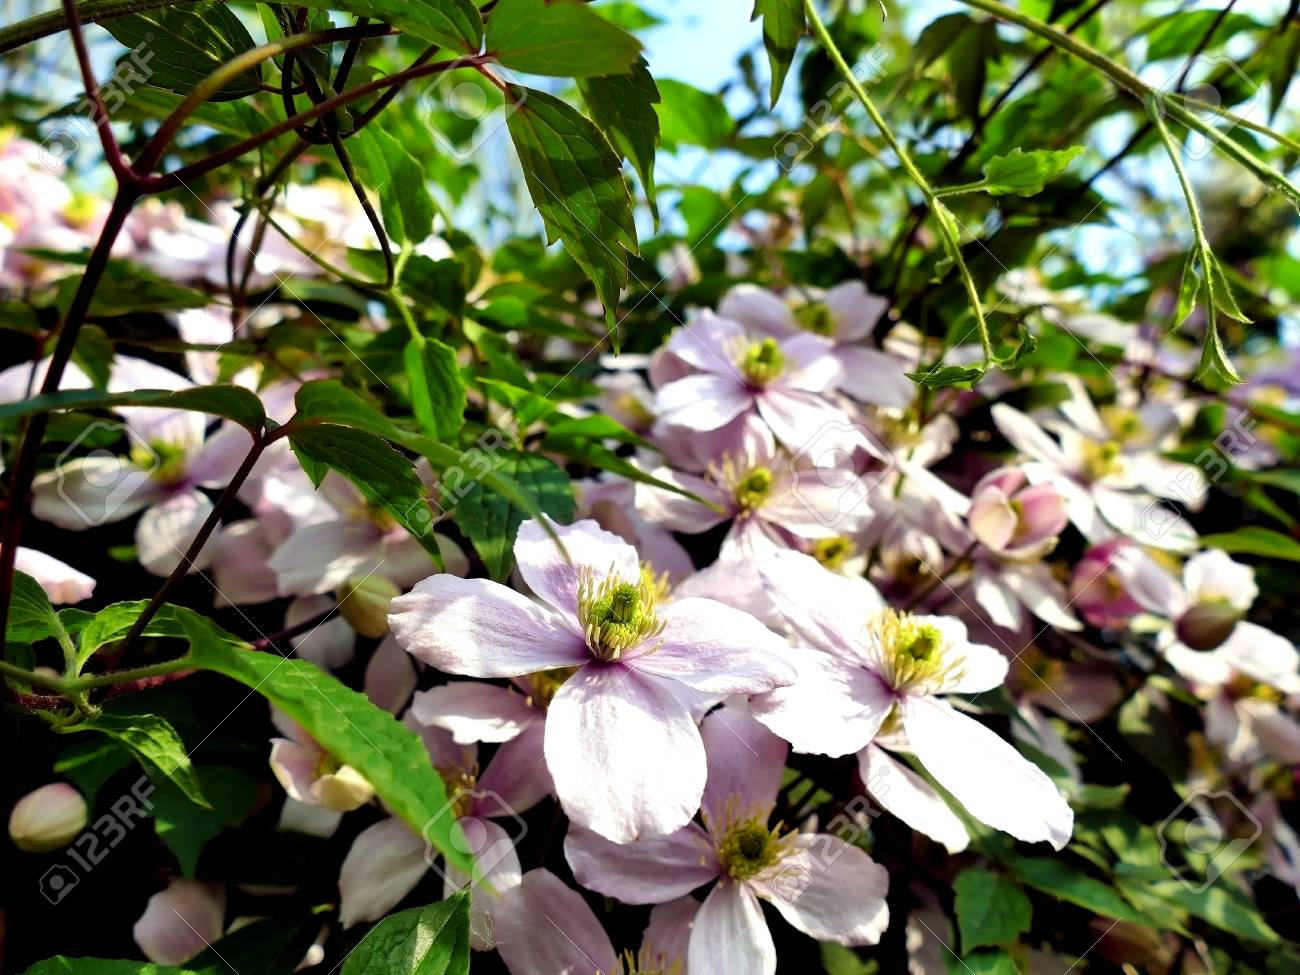 Clematis montana climbing plant with many pink flowers on a sunny clematis montana climbing plant with many pink flowers on a sunny day stock photo 58815501 mightylinksfo